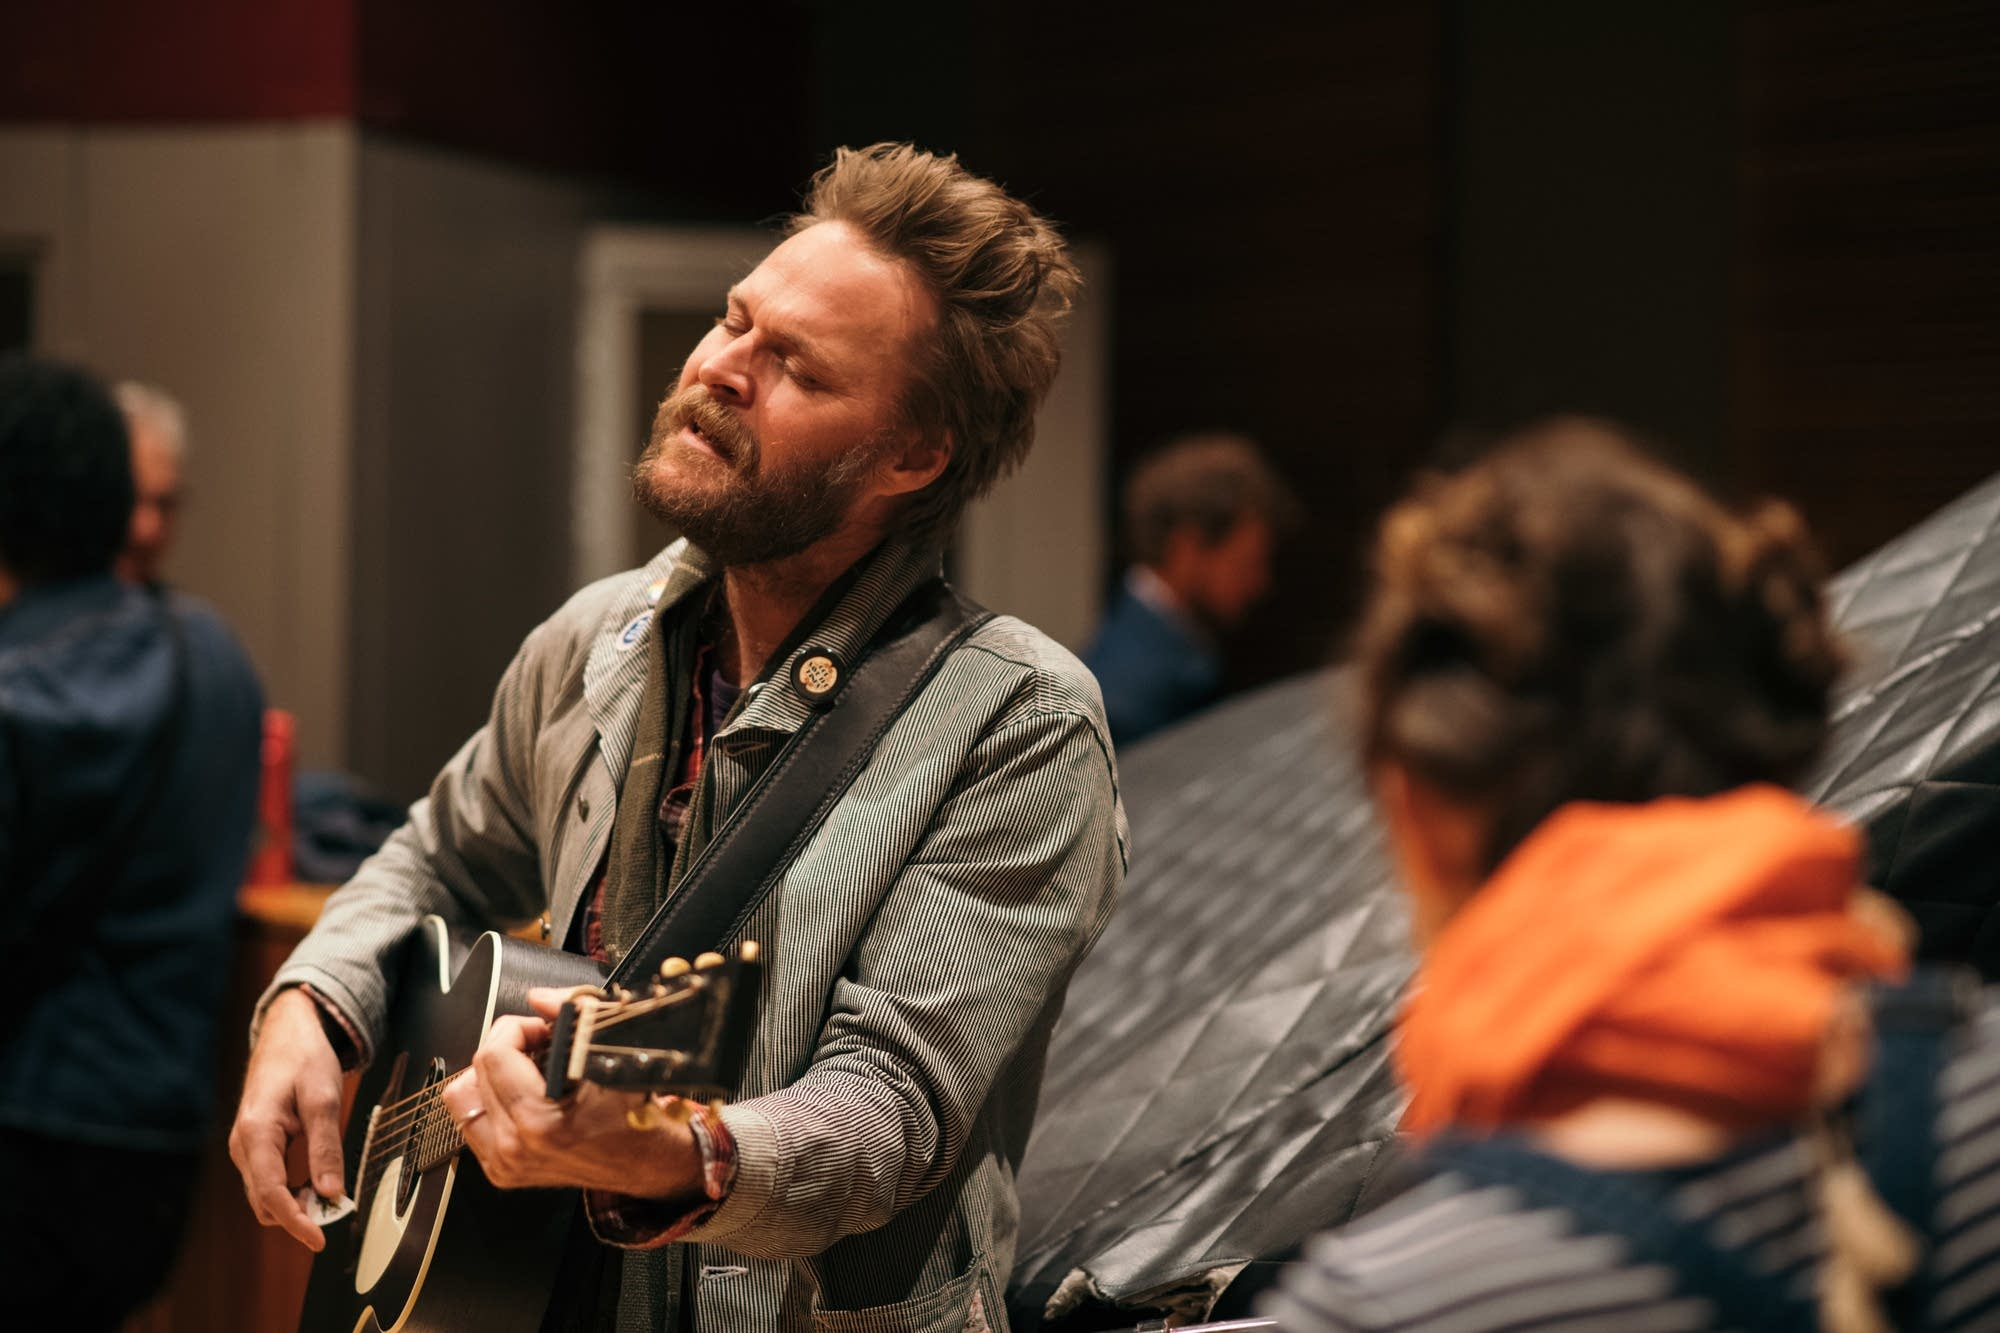 Hiss Golden Messenger perform in The Current studio